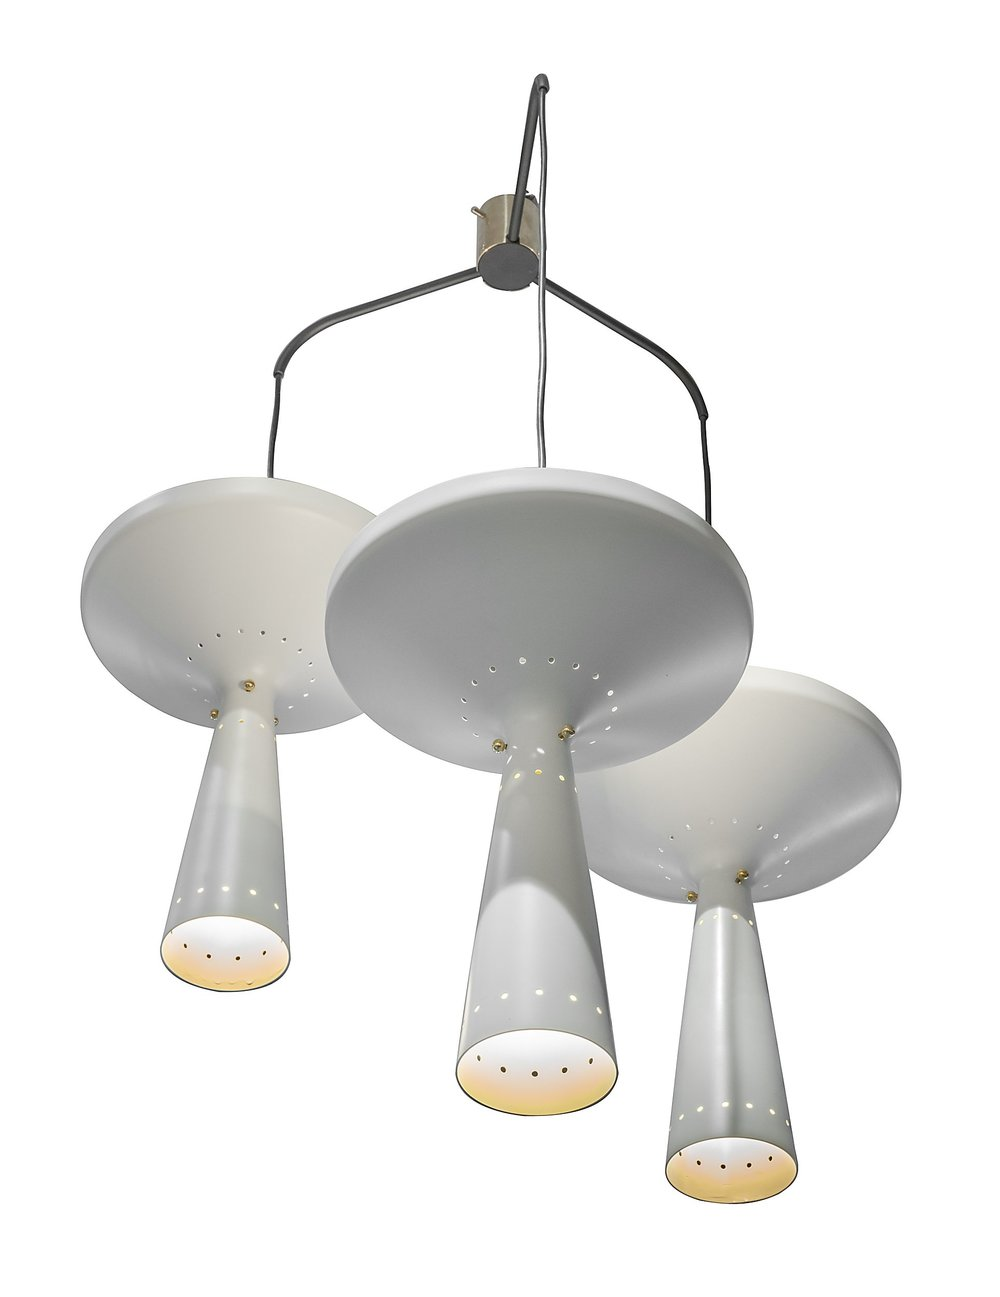 Three_Hanging_Light_Pendants_B_org.jpg